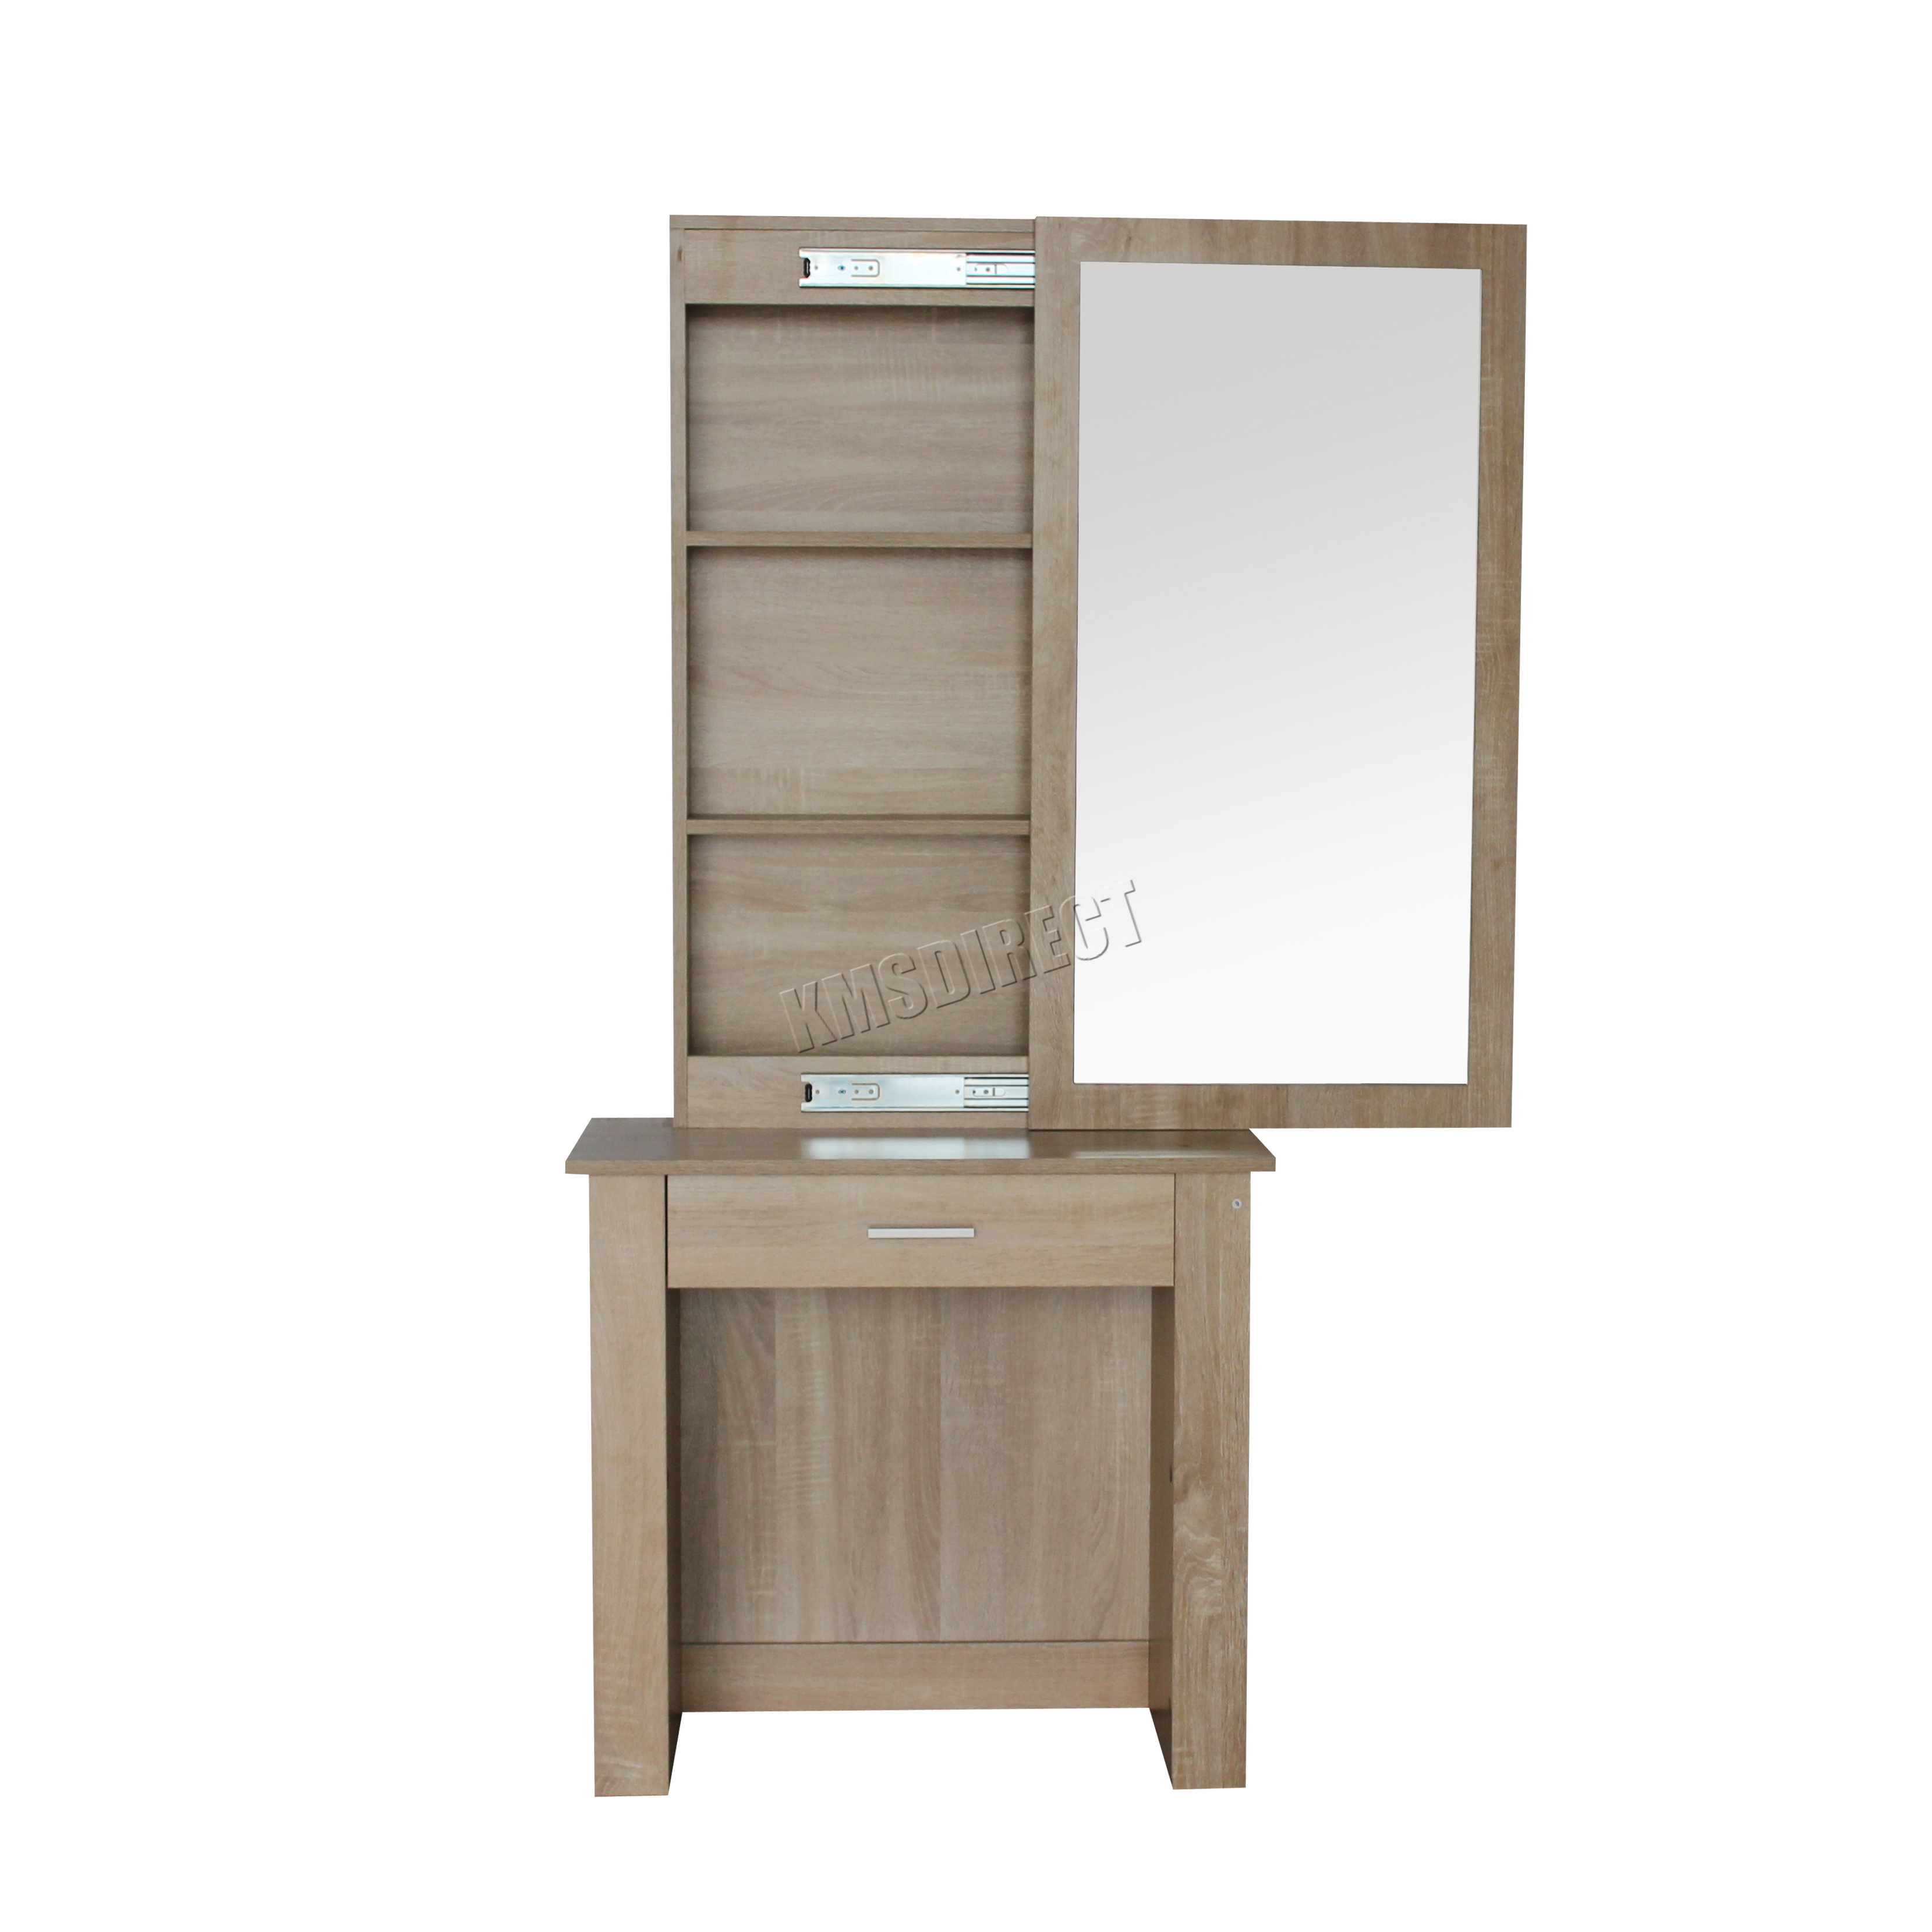 FoxHunter Wooden Makeup Jewelry Dressing Table With Sliding